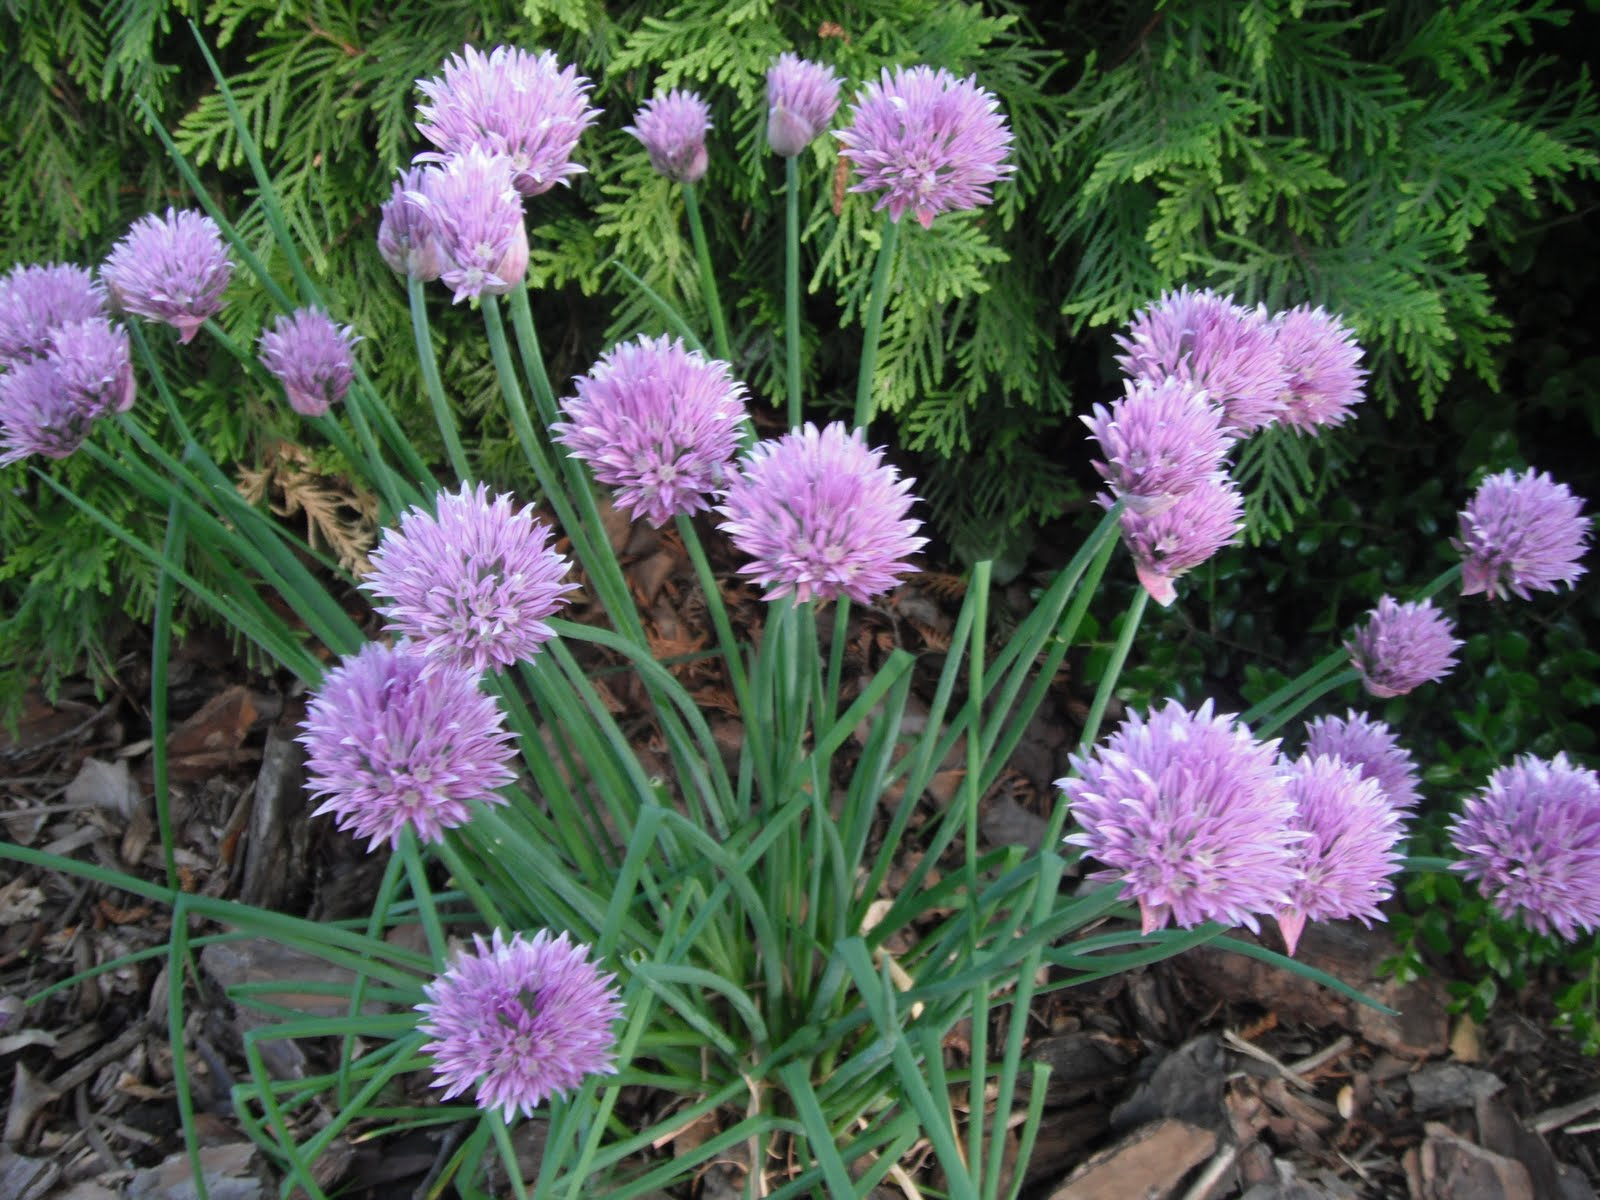 Yes You Can Eat The Flowers Of Chives Each Little Pink Purple Flower Has A Distinct Garlic Onion Flavor That Is Not Matched By Anything I Have Ever